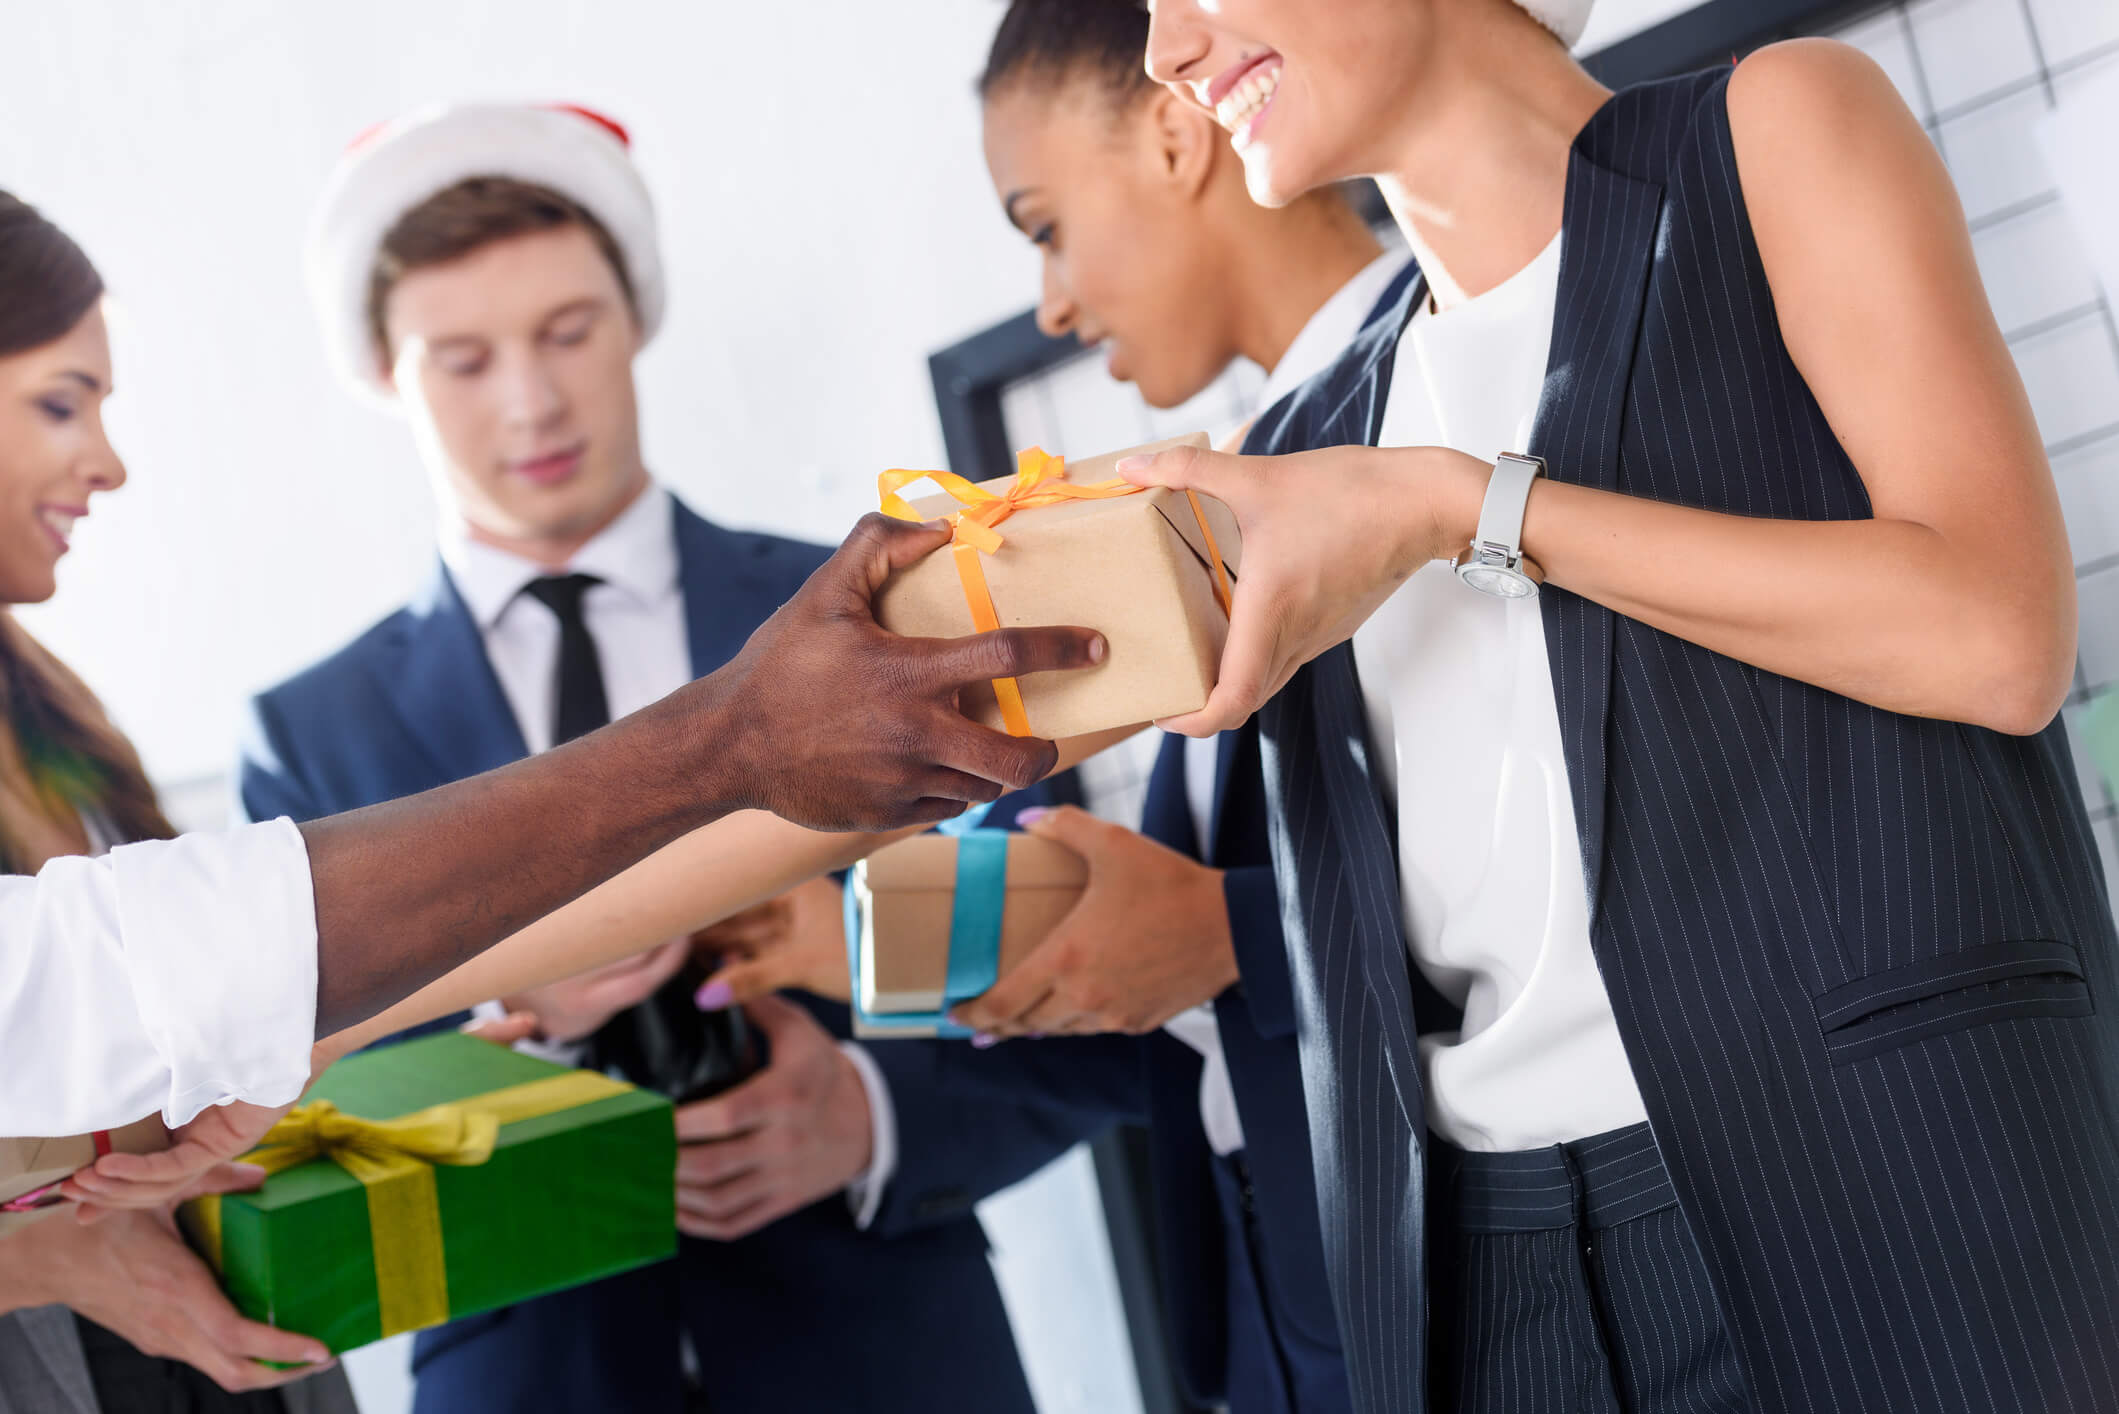 This Year's Corporate Holiday Gift Trends (2019 Preview) Corporate Christmas gifts